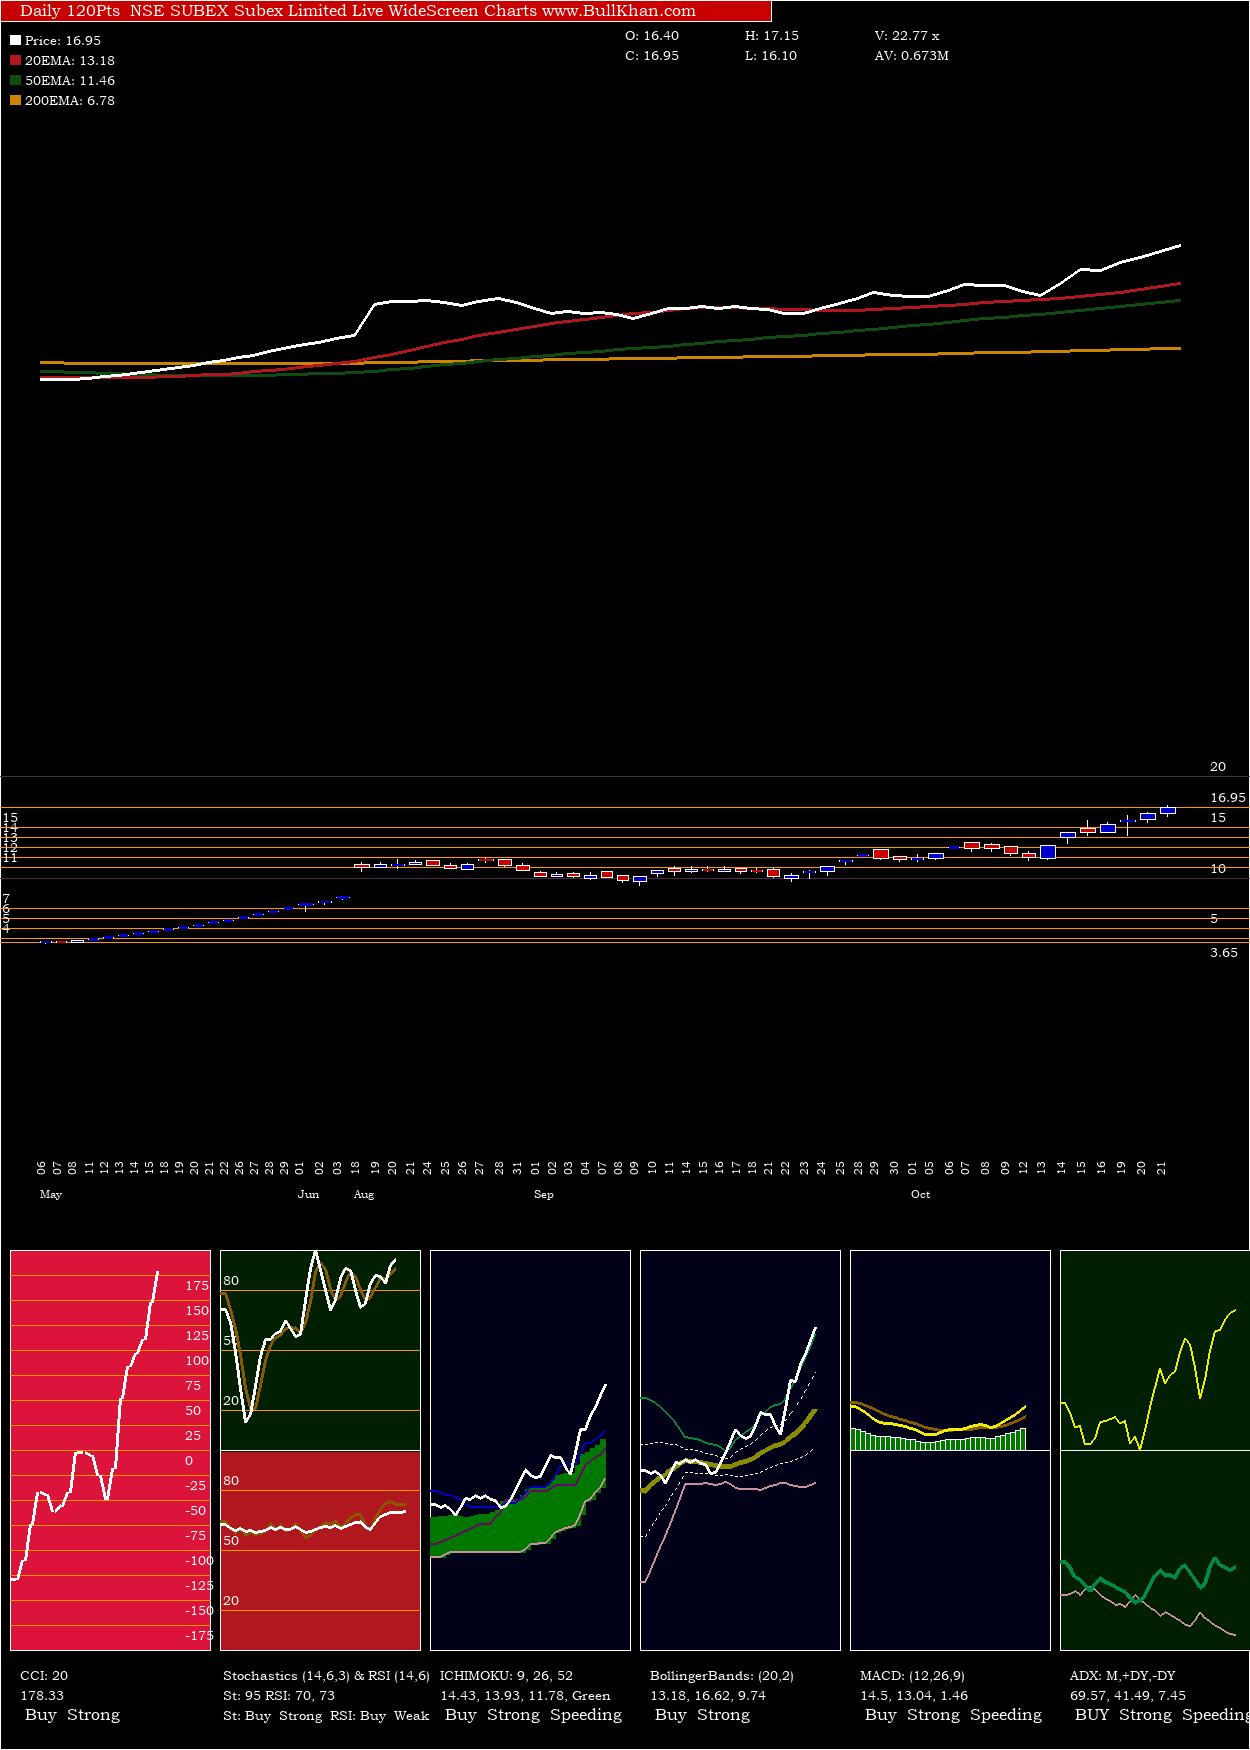 Subex Limited charts and indicators